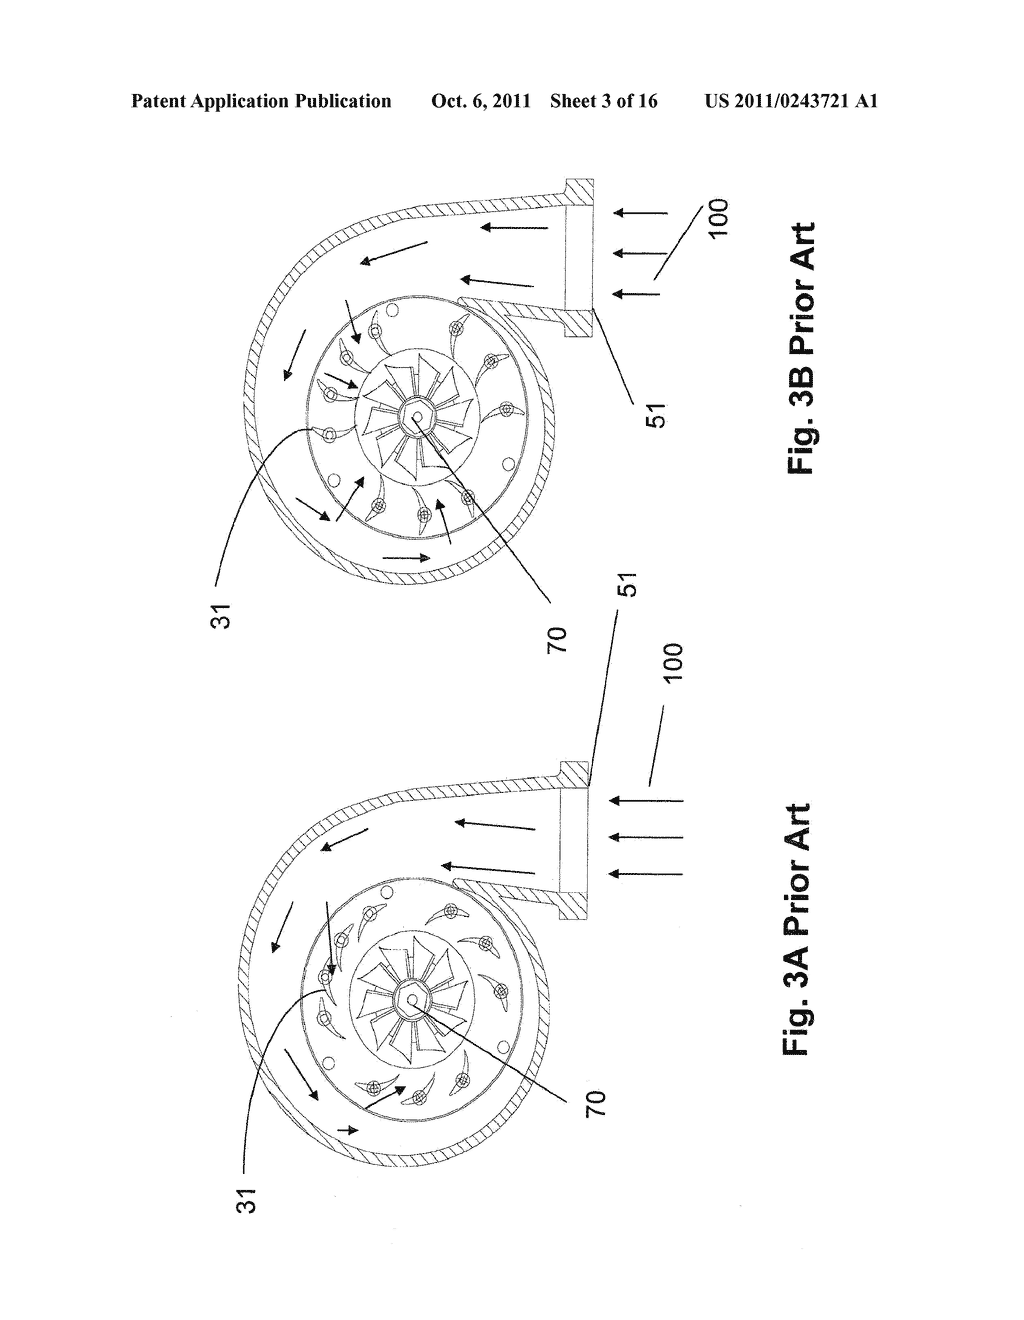 Simplified Variable Geometry Turbocharger With Vane Rings Diagram Schematic And Image 04